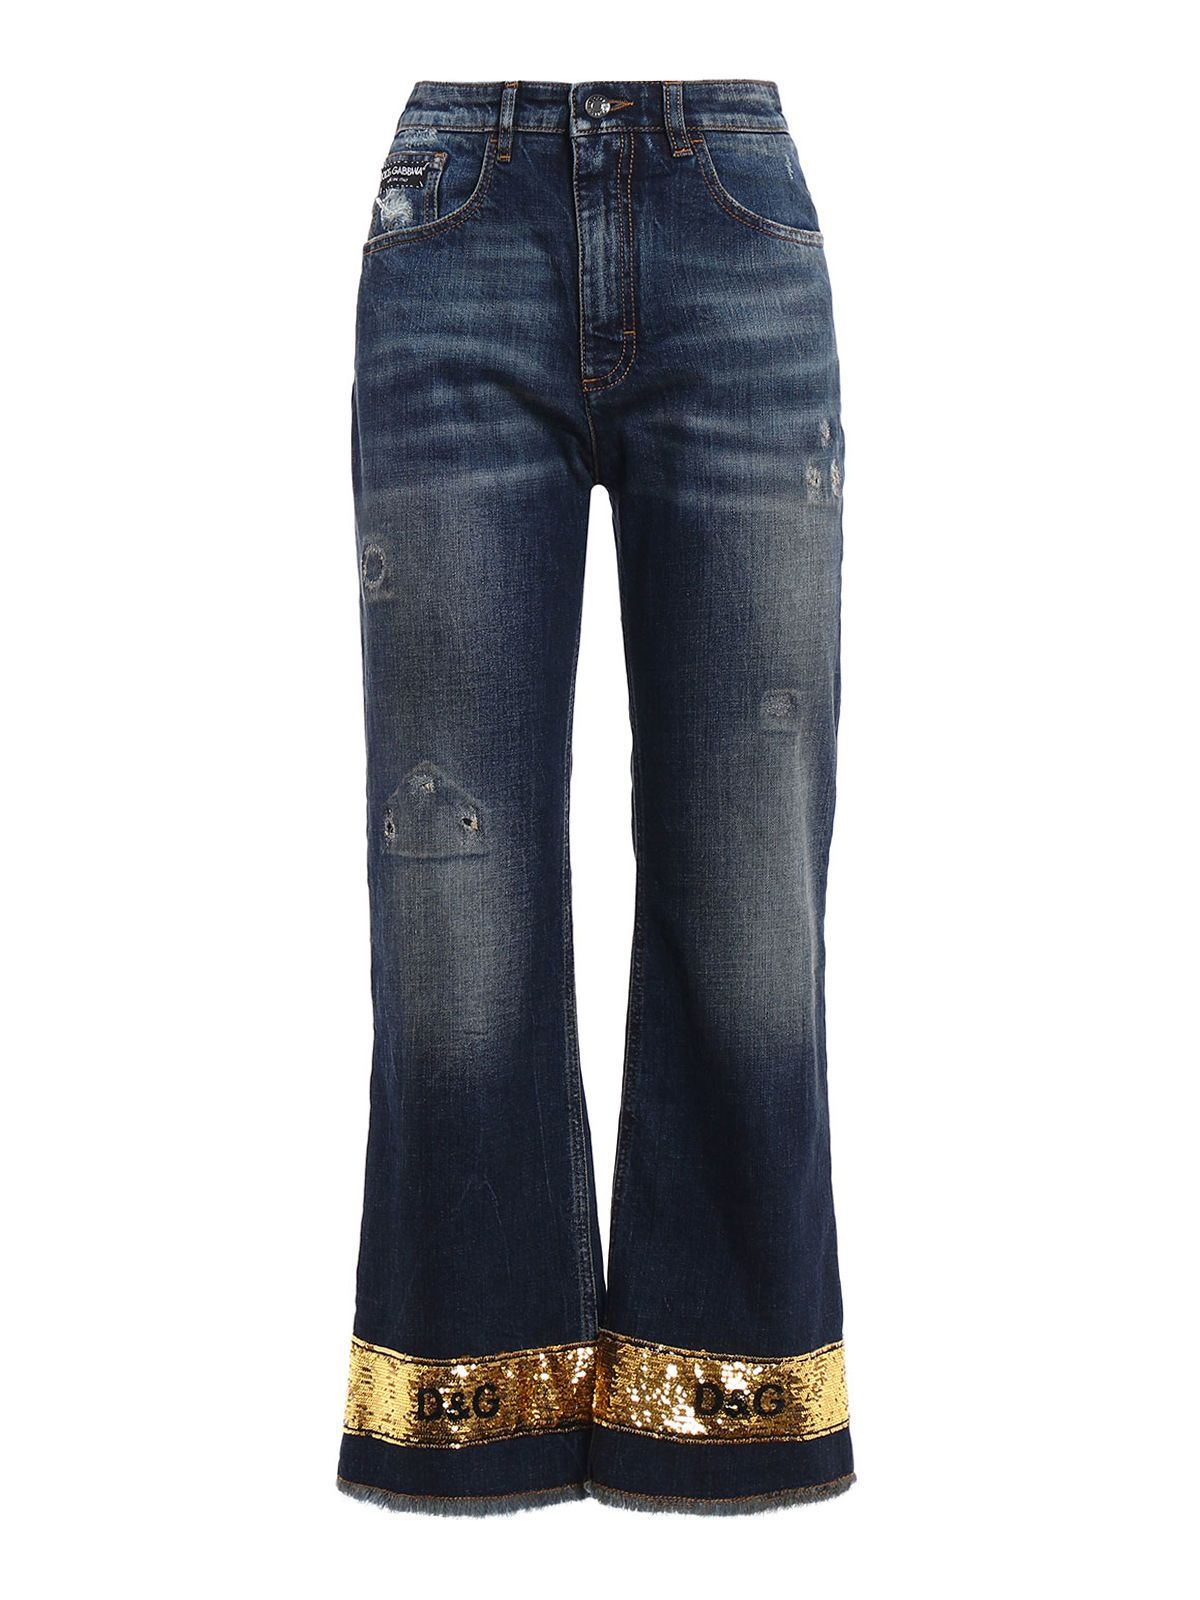 Dolce & Gabbana 5 Pocket Denim Pants